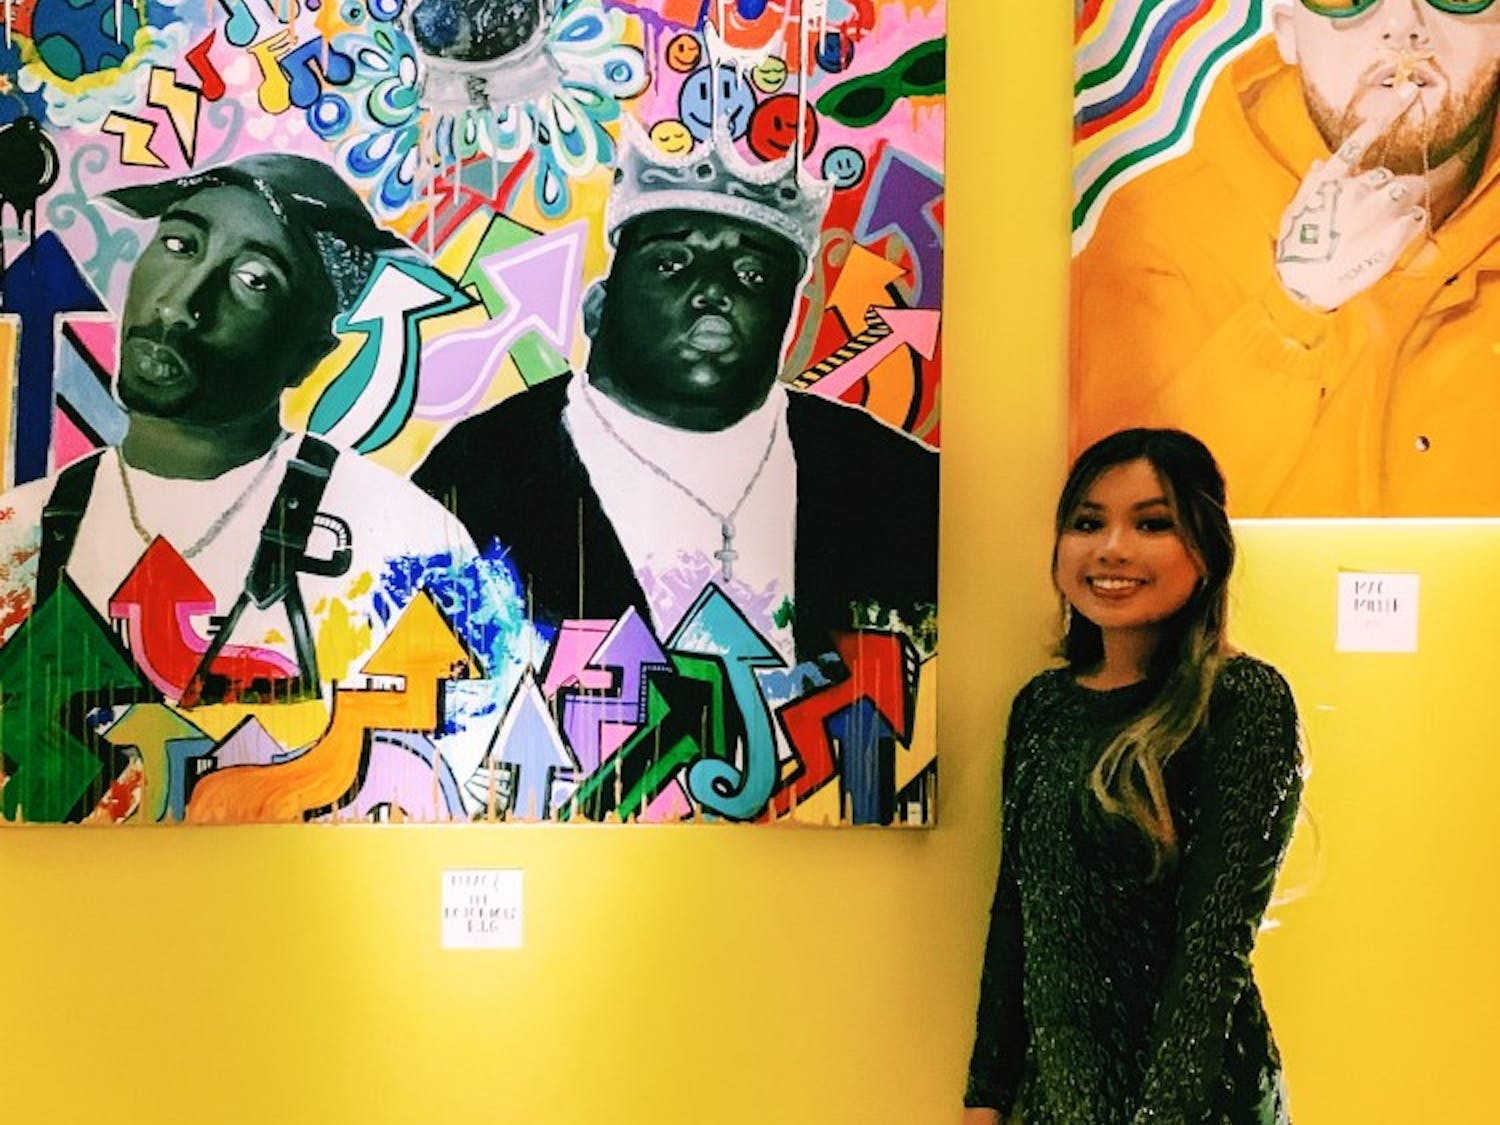 Jasmine To poses with her paintings.